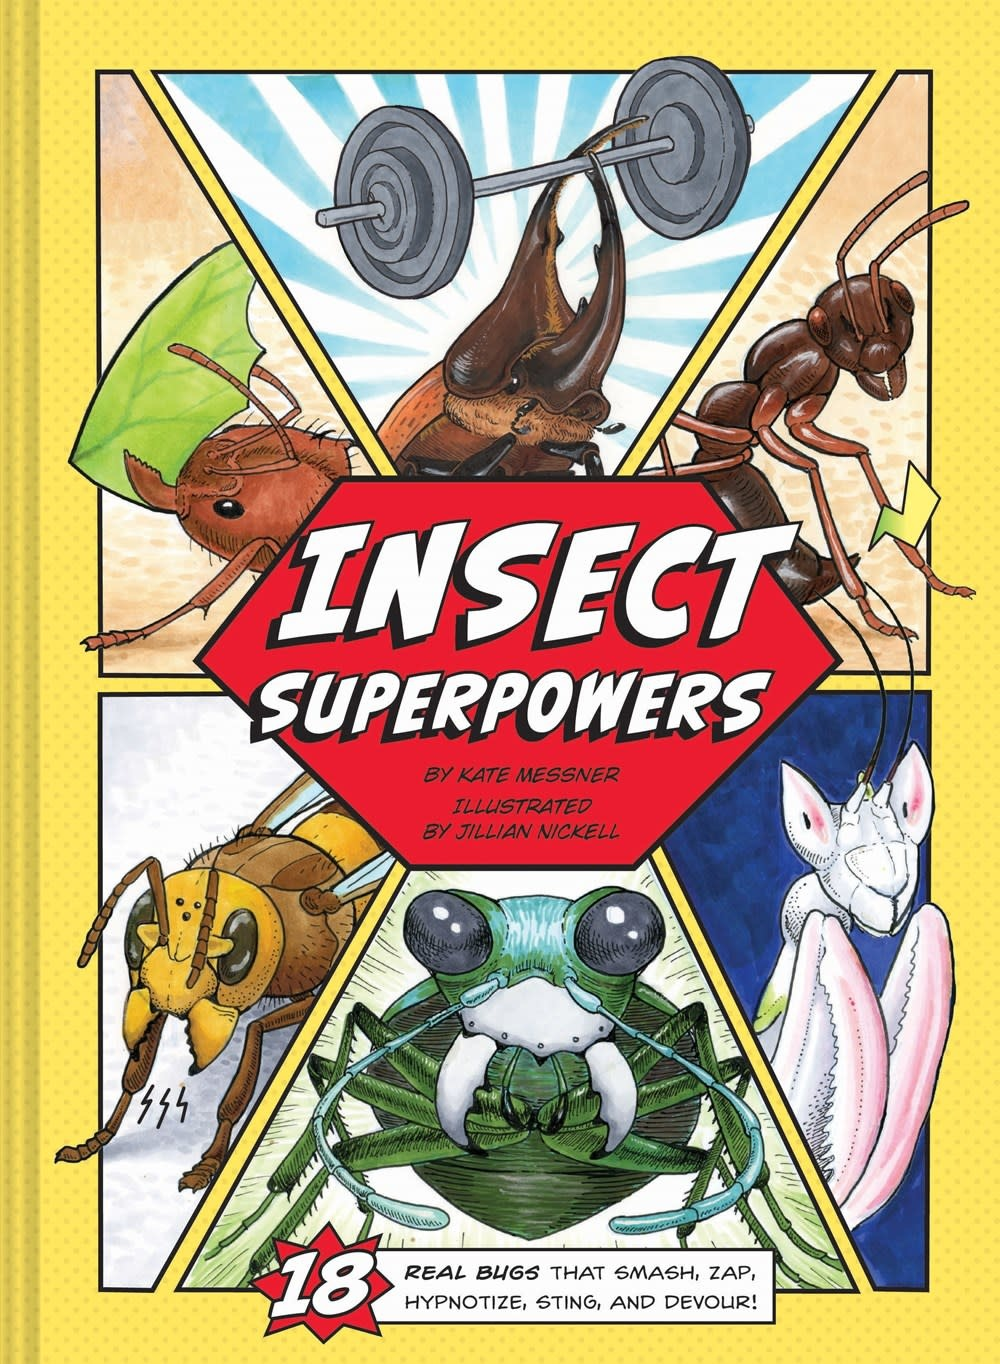 Chronicle Books Insect Superpowers: 18 Real Bugs that Smash, Zap...